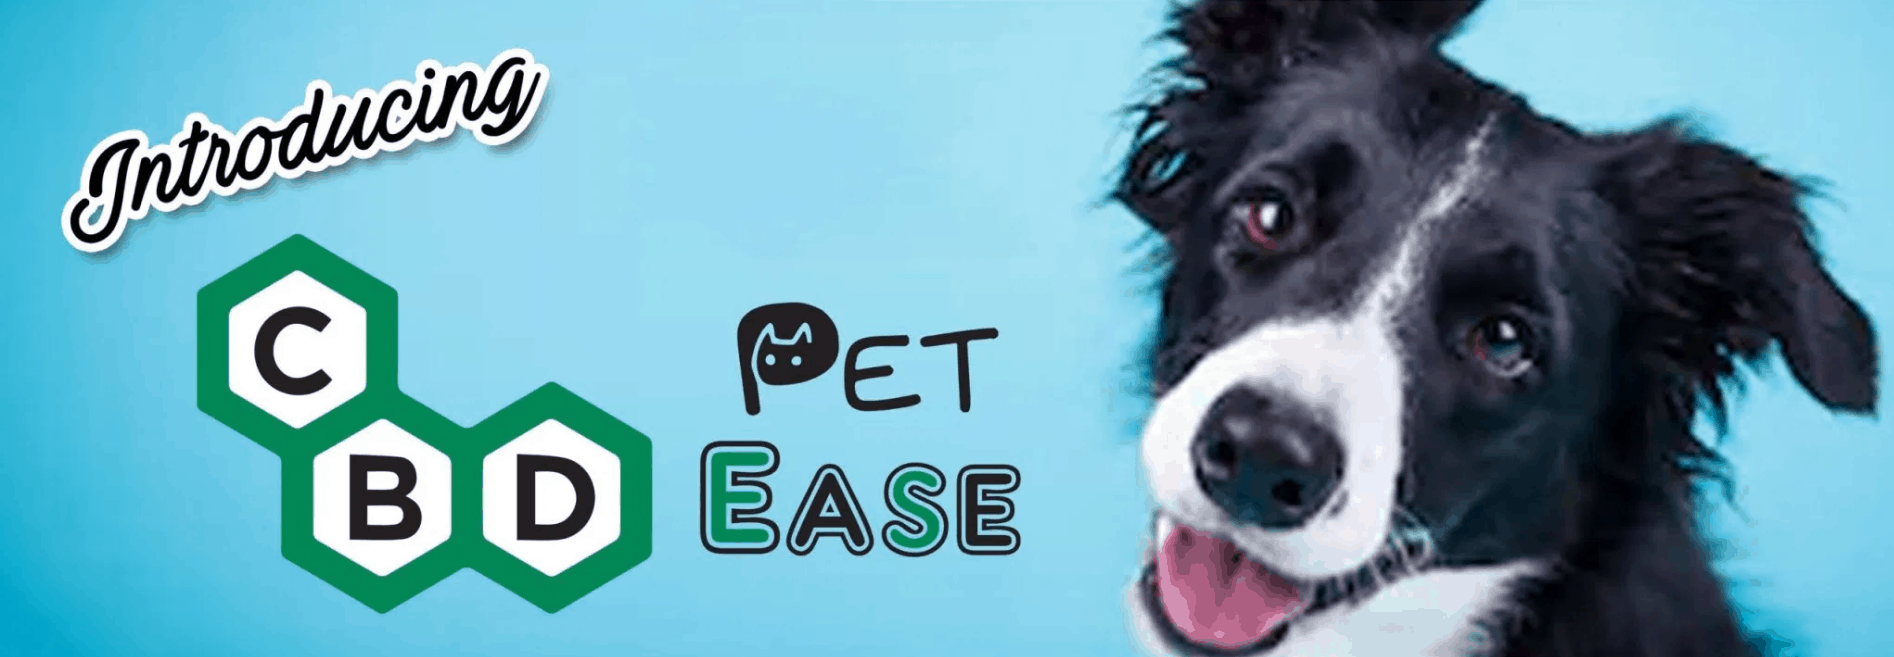 Pet Friendly Products By CBD Ease